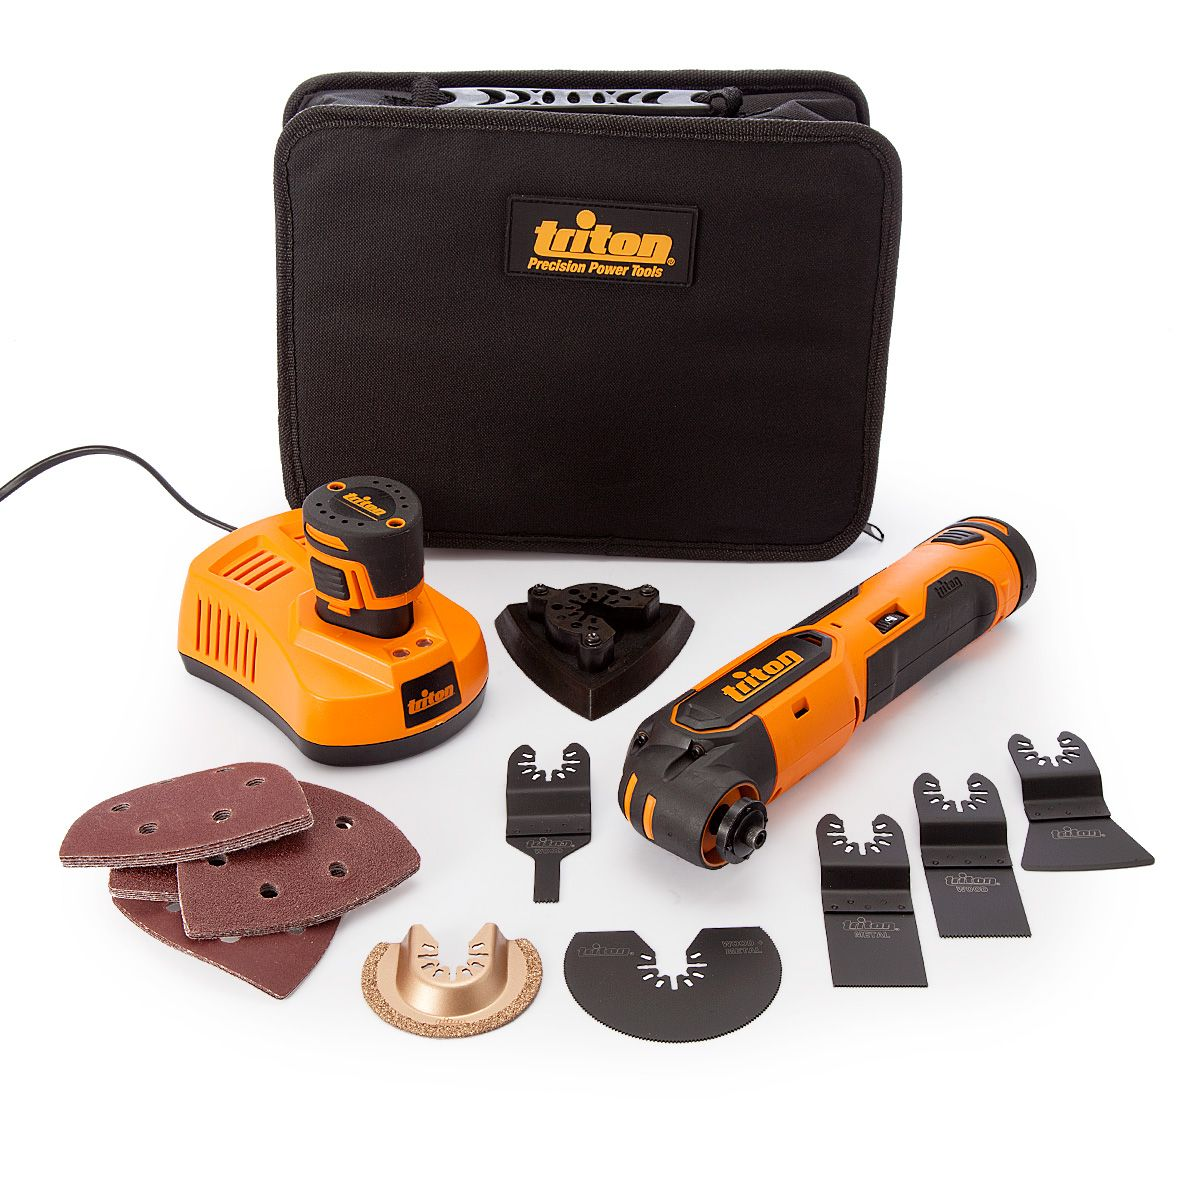 Triton 103691 Oscillating Multi Tool 12V. Versatile Li-Ion oscillating tool that cuts, sands, scrapes, grinds, rasps and...5024763111112